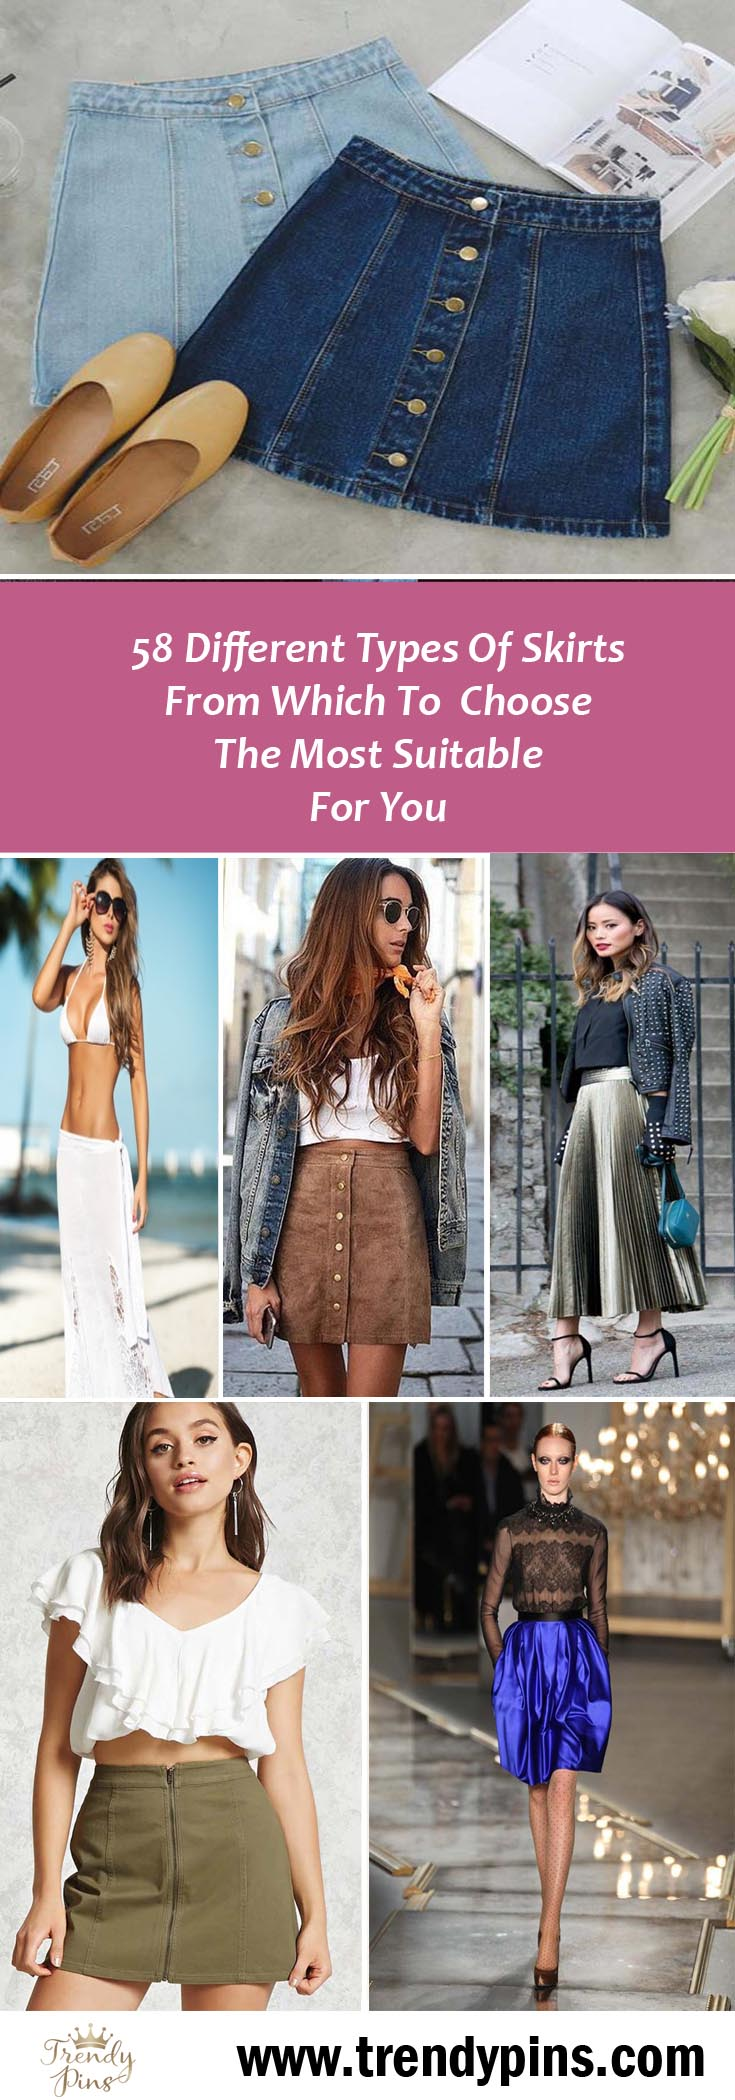 29375e92237155 58 Different Types Of Skirts From Which To Choose The Most Suitable ...